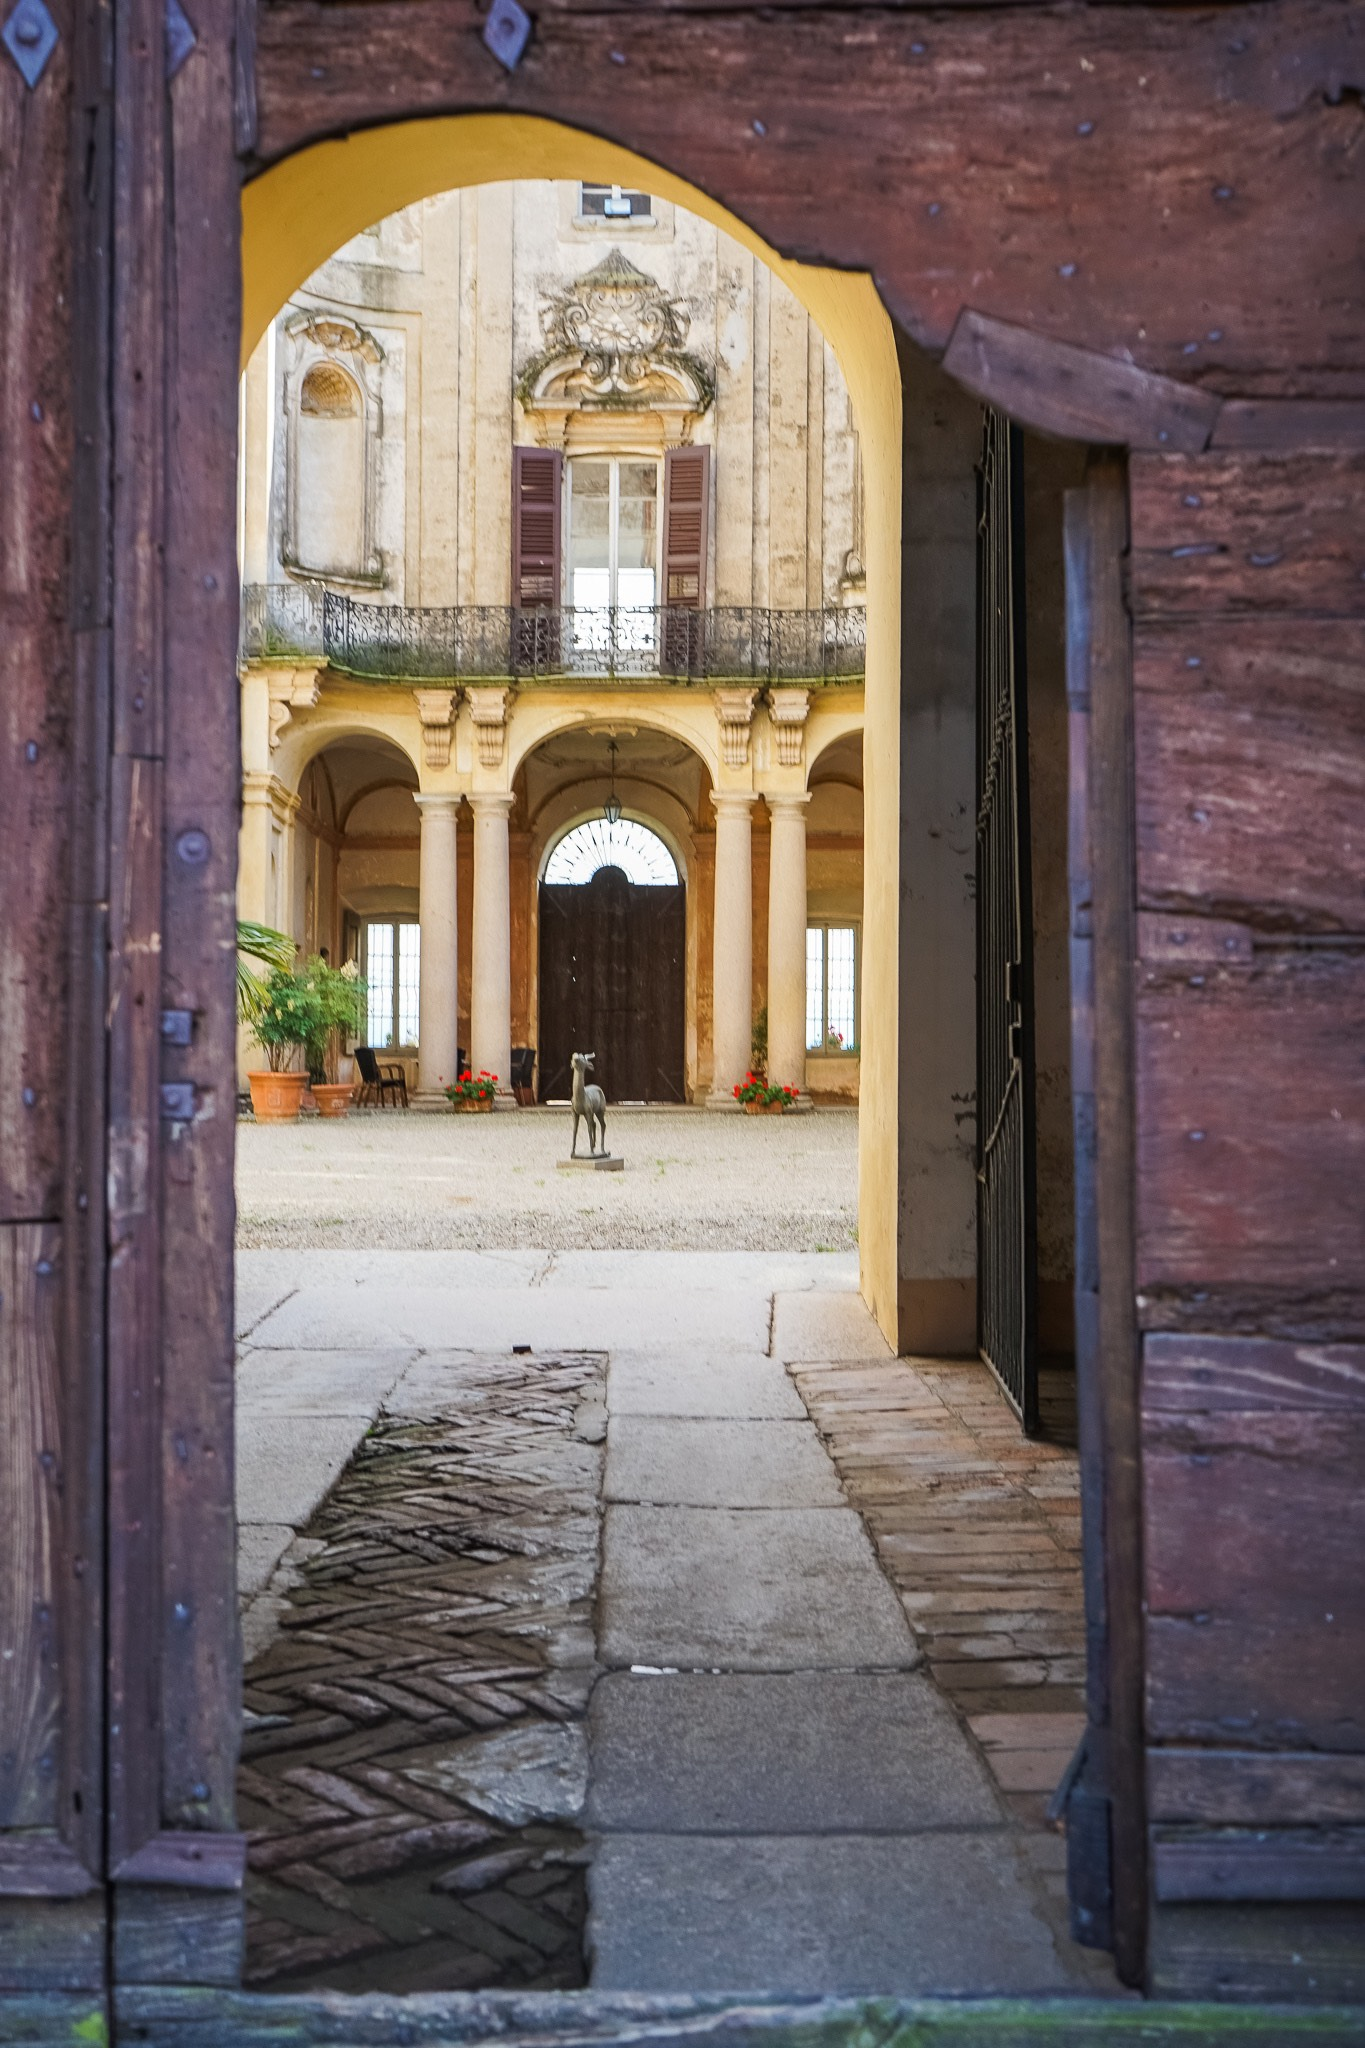 The charming baroque courtyard inside the Castle of Chignolo Po in Lombardy